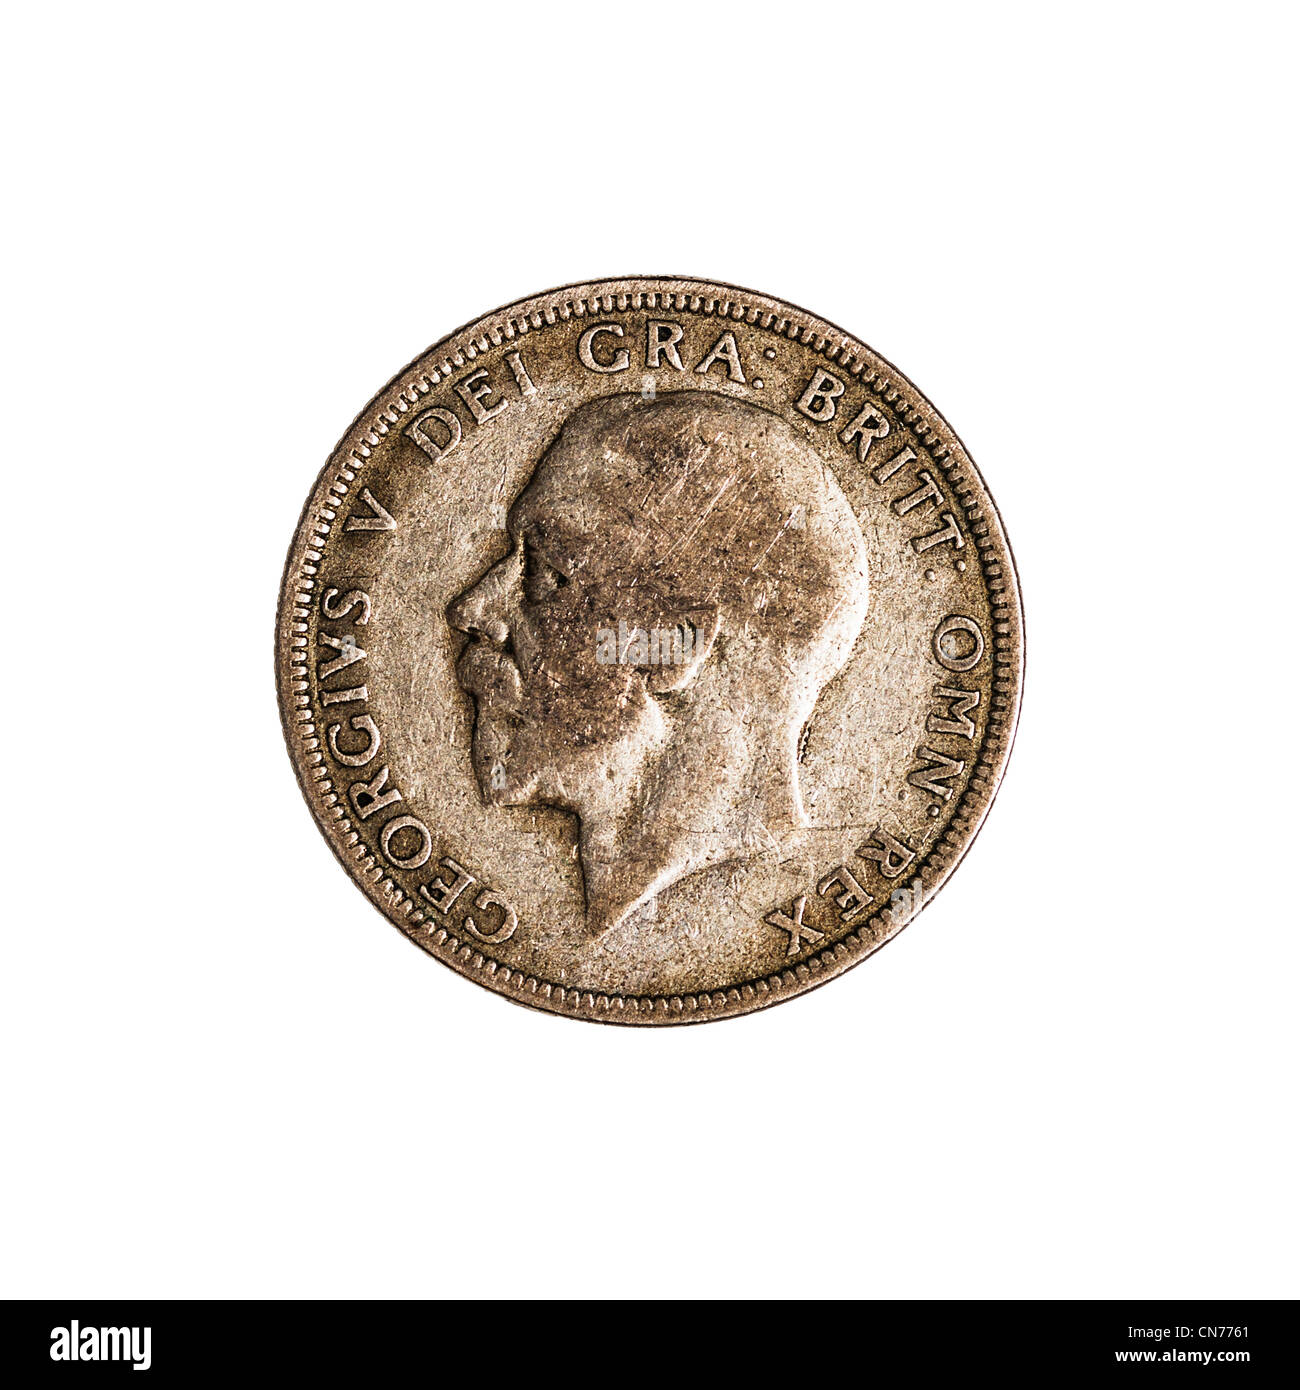 An English pre decimal one florin coin dated 1936 on a white background - Stock Image